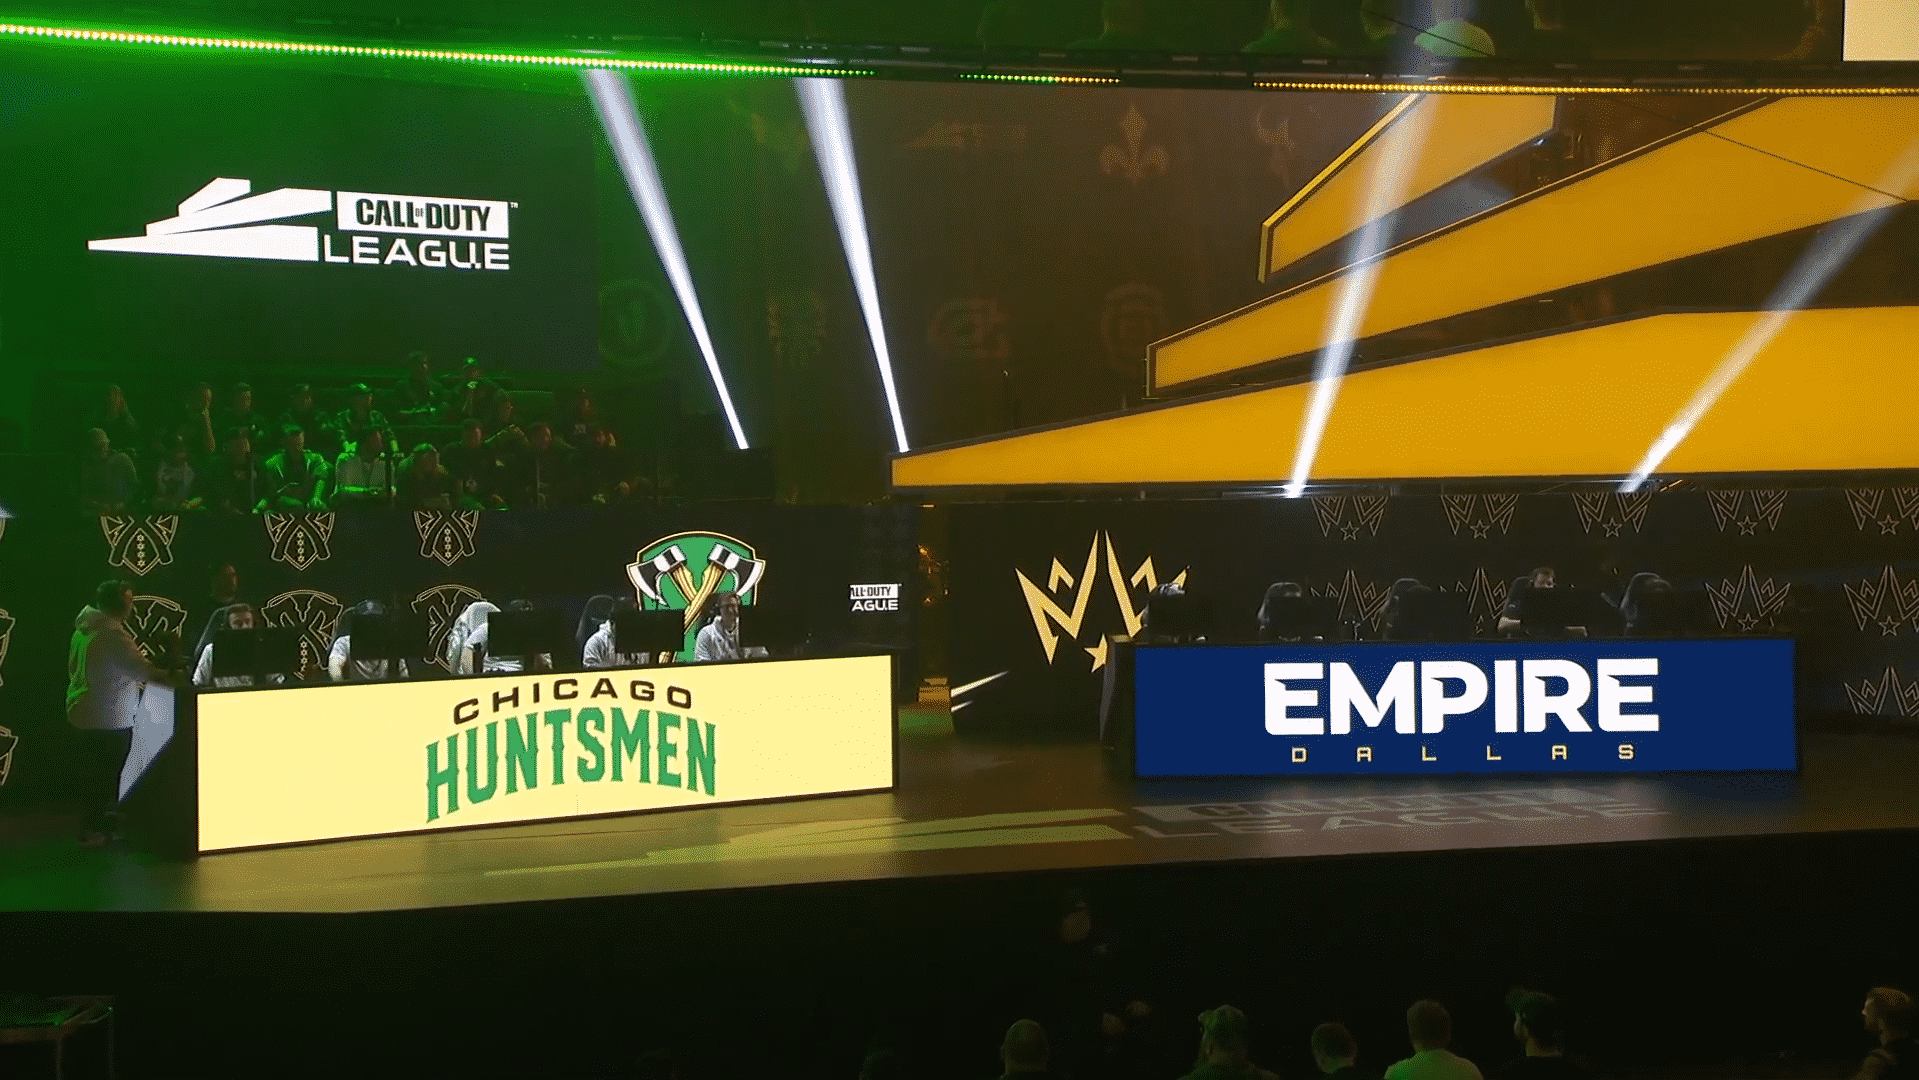 Dallas Empire versus Chicago Huntsmen